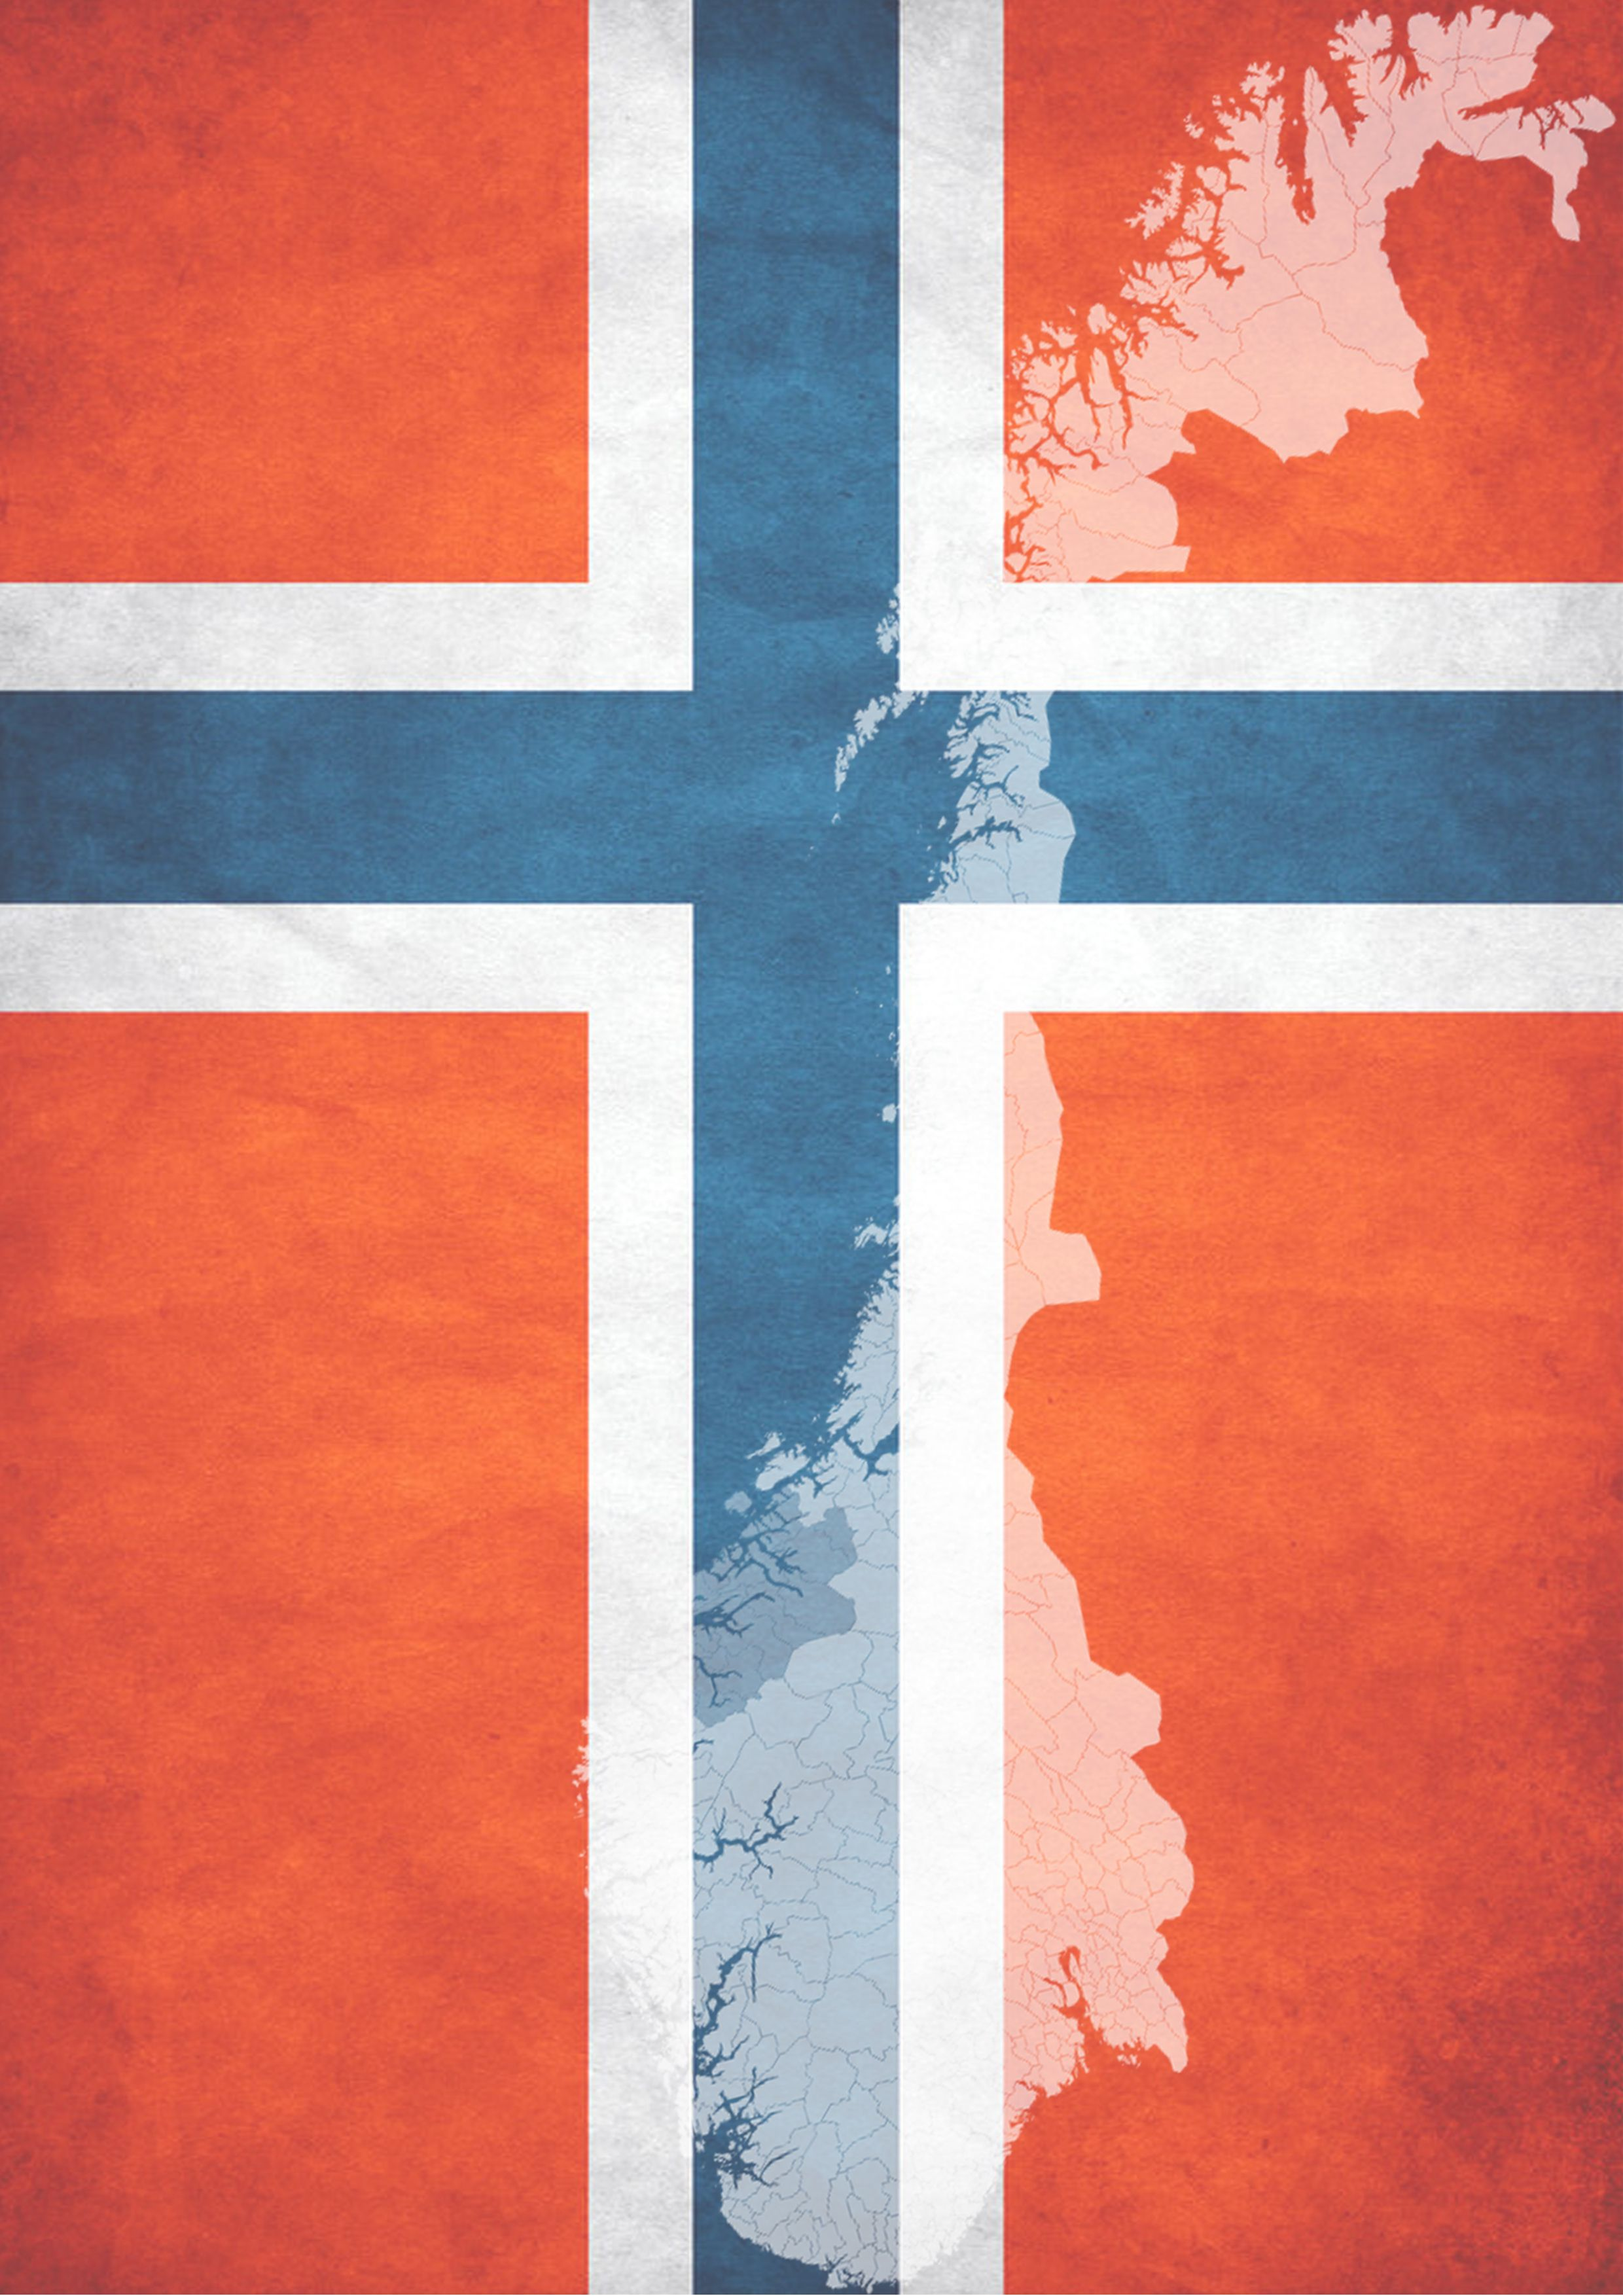 Pin By Vivien Lanquis On Things I Like Norway Flag Beautiful Norway Norway Travel